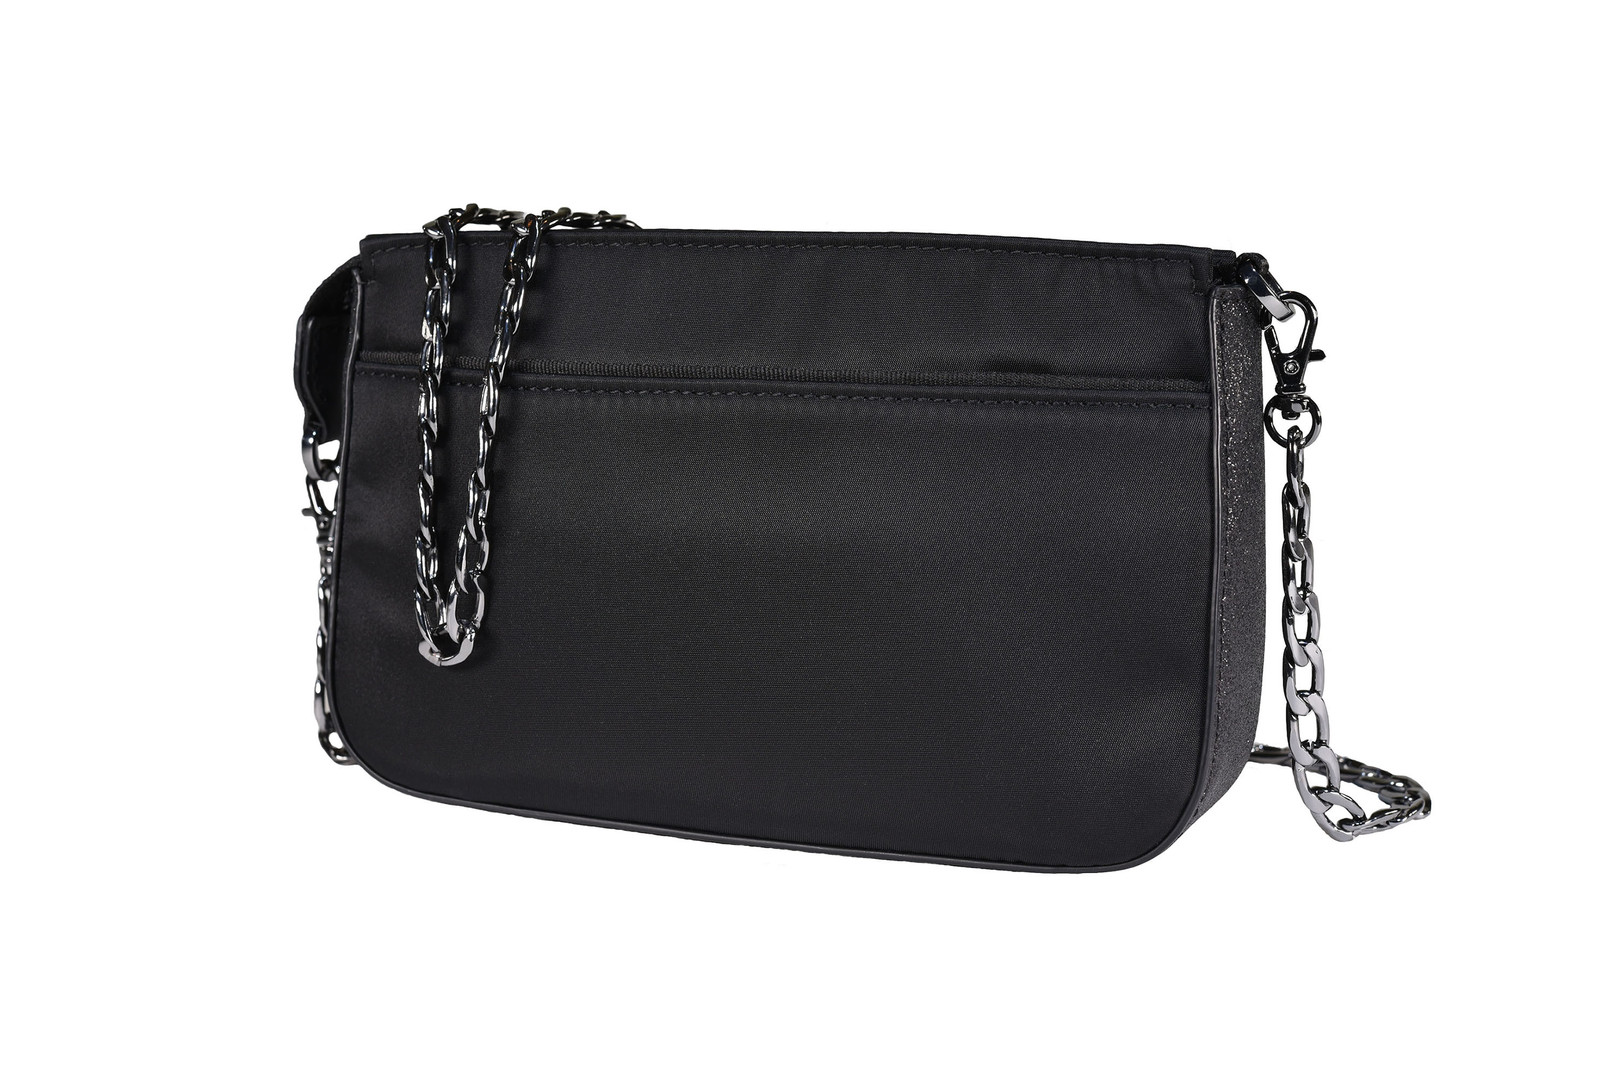 DreamComber Clutch Bag